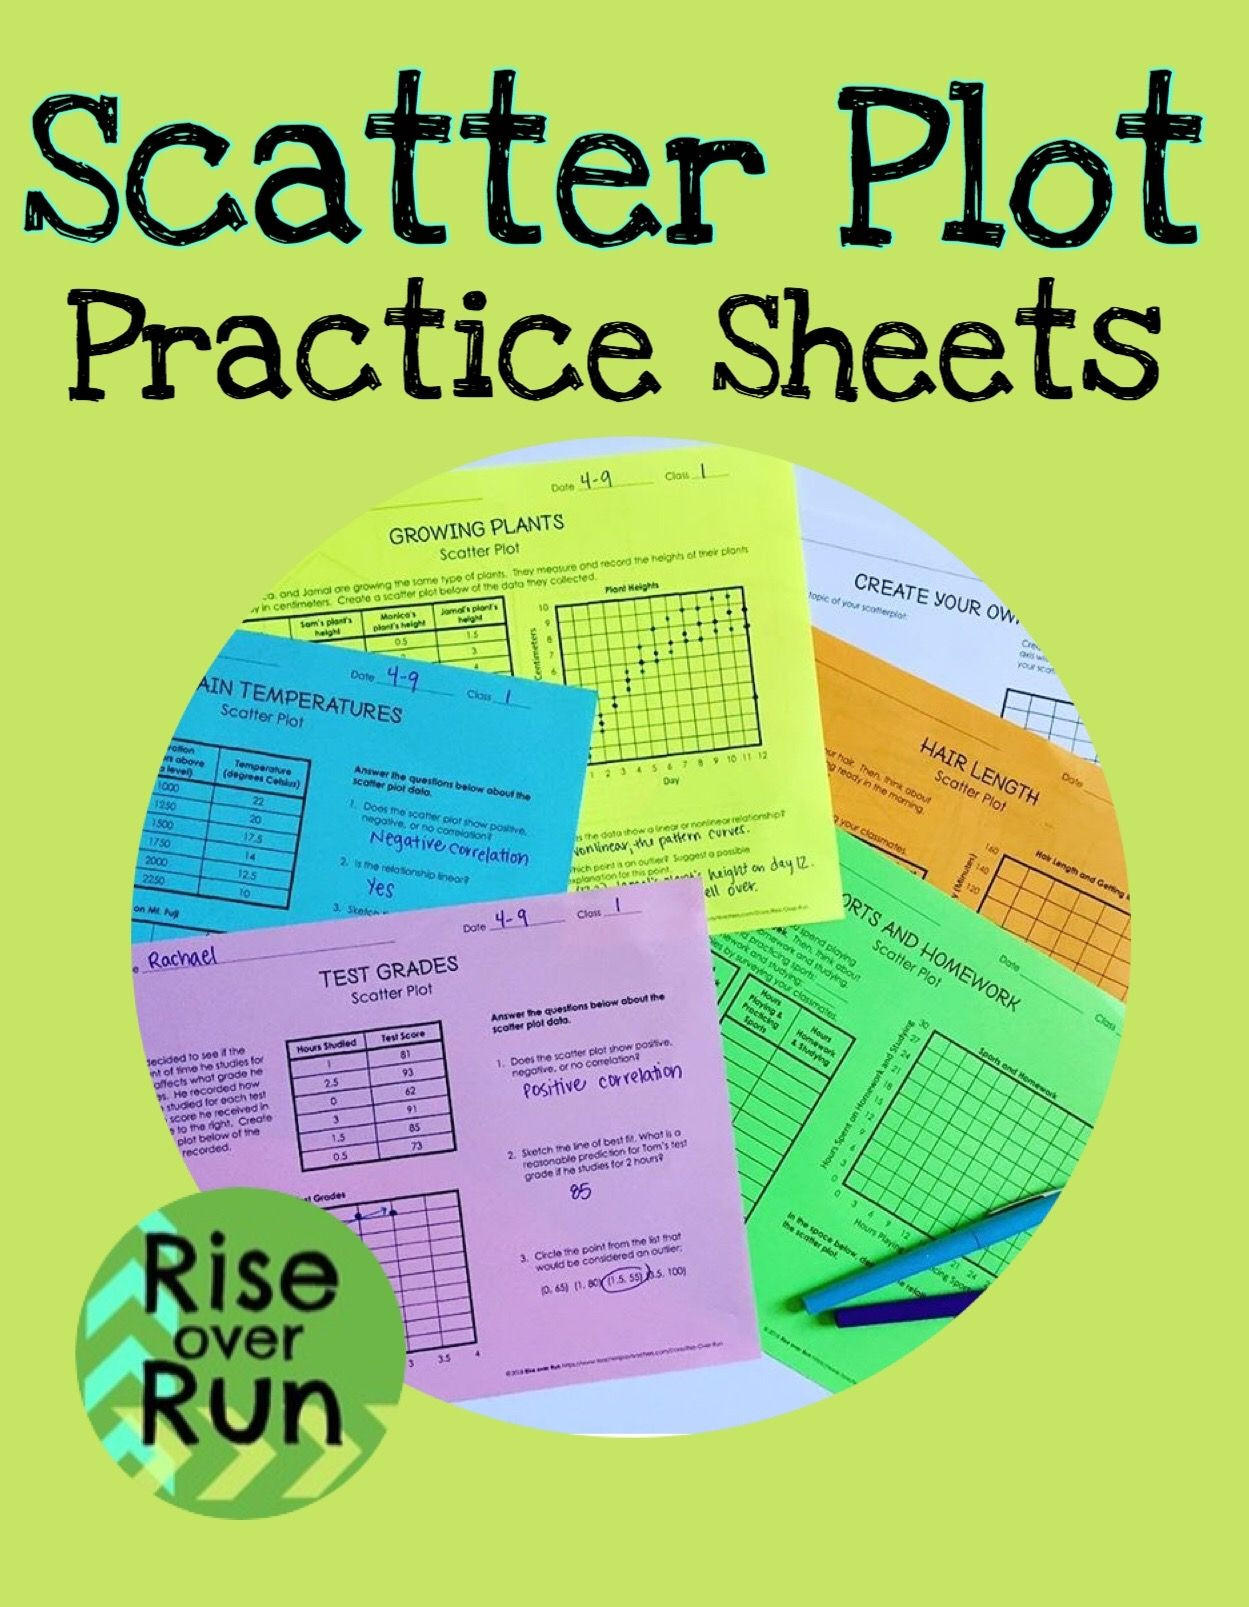 Scatter Plots Worksheets 8th Grade Scatter Plot Practice Worksheets and Blank Template to